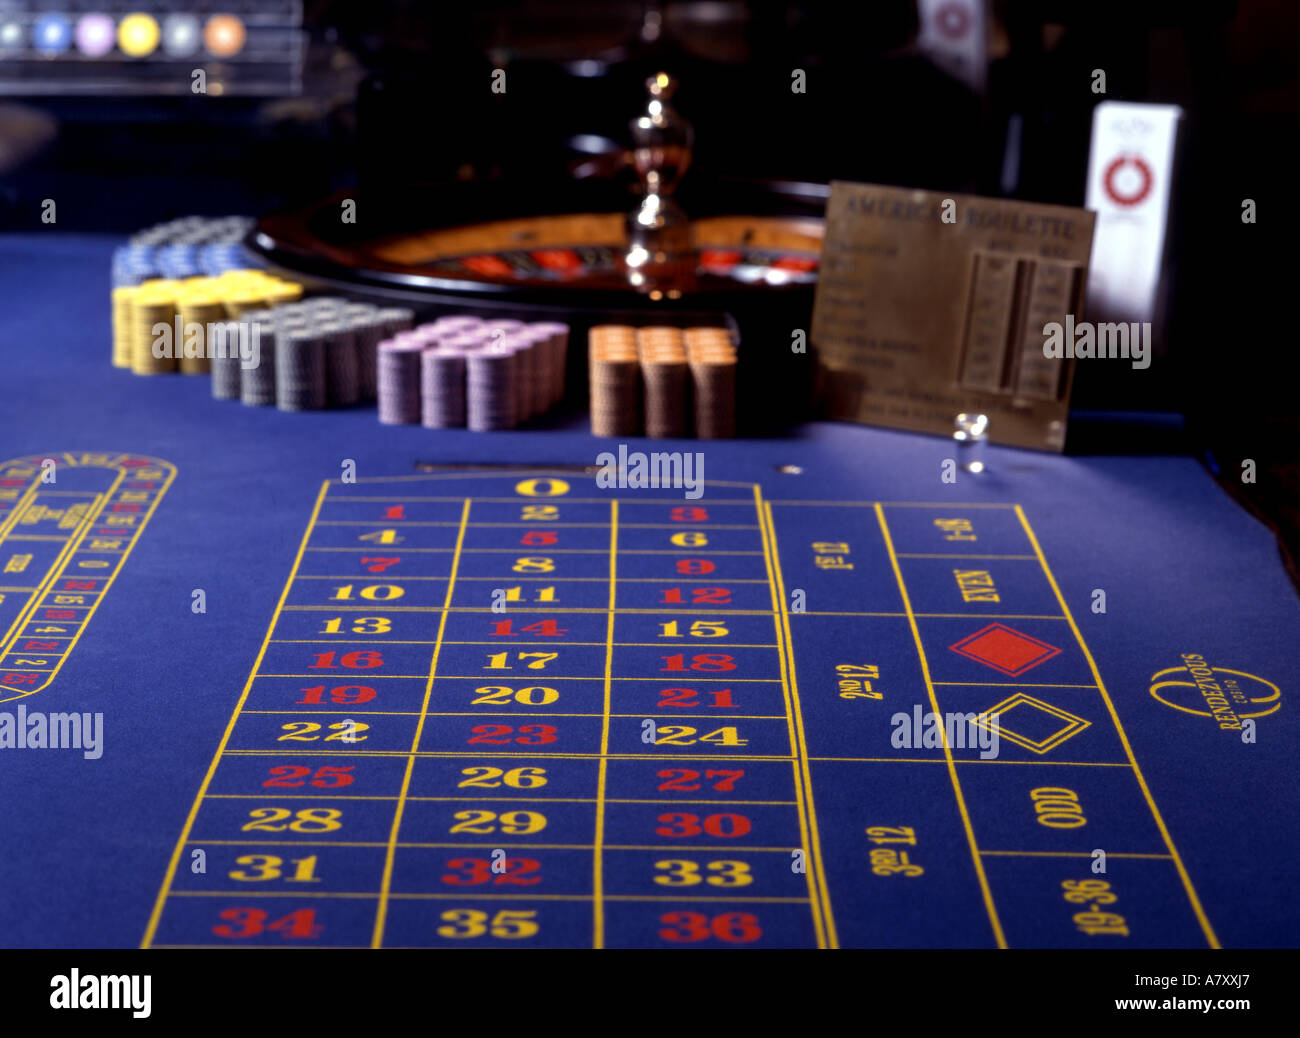 Win money at roulette gambling system that